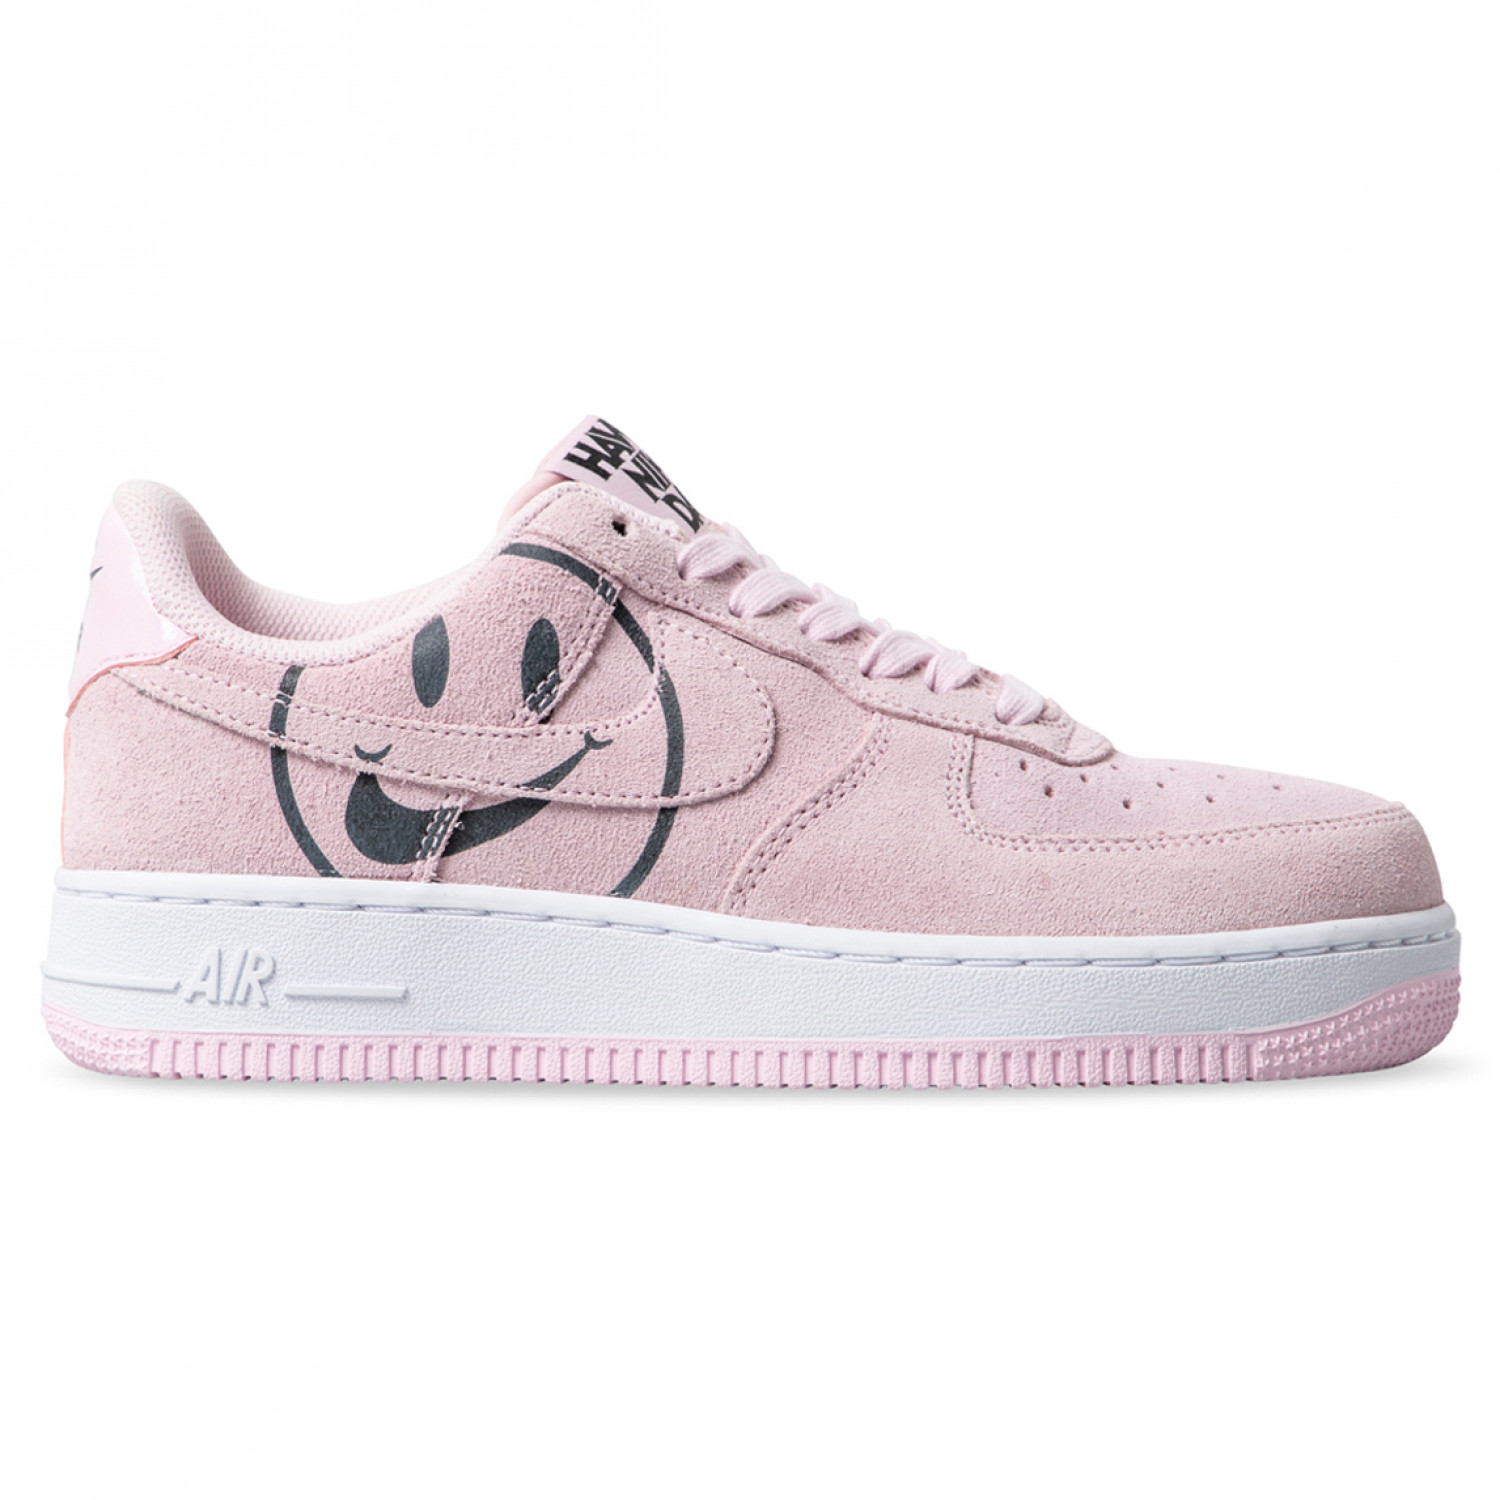 Now Available: Nike Air Force 1 Low